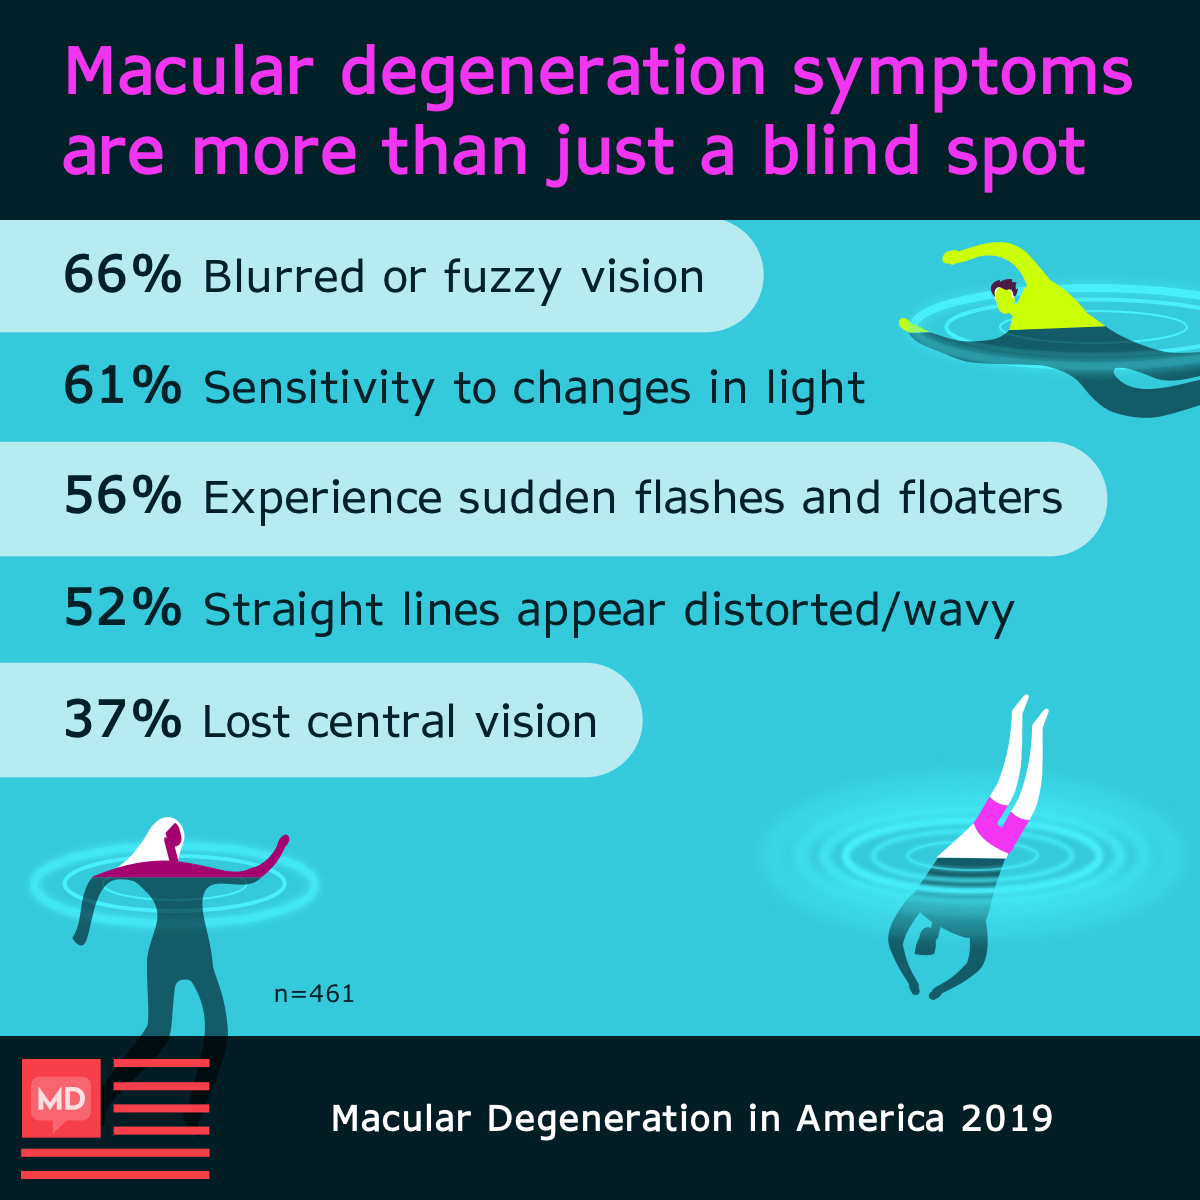 Respondents of the macular degeneration In America survey experienced blurred or fuzzy vision more than any other symptom.